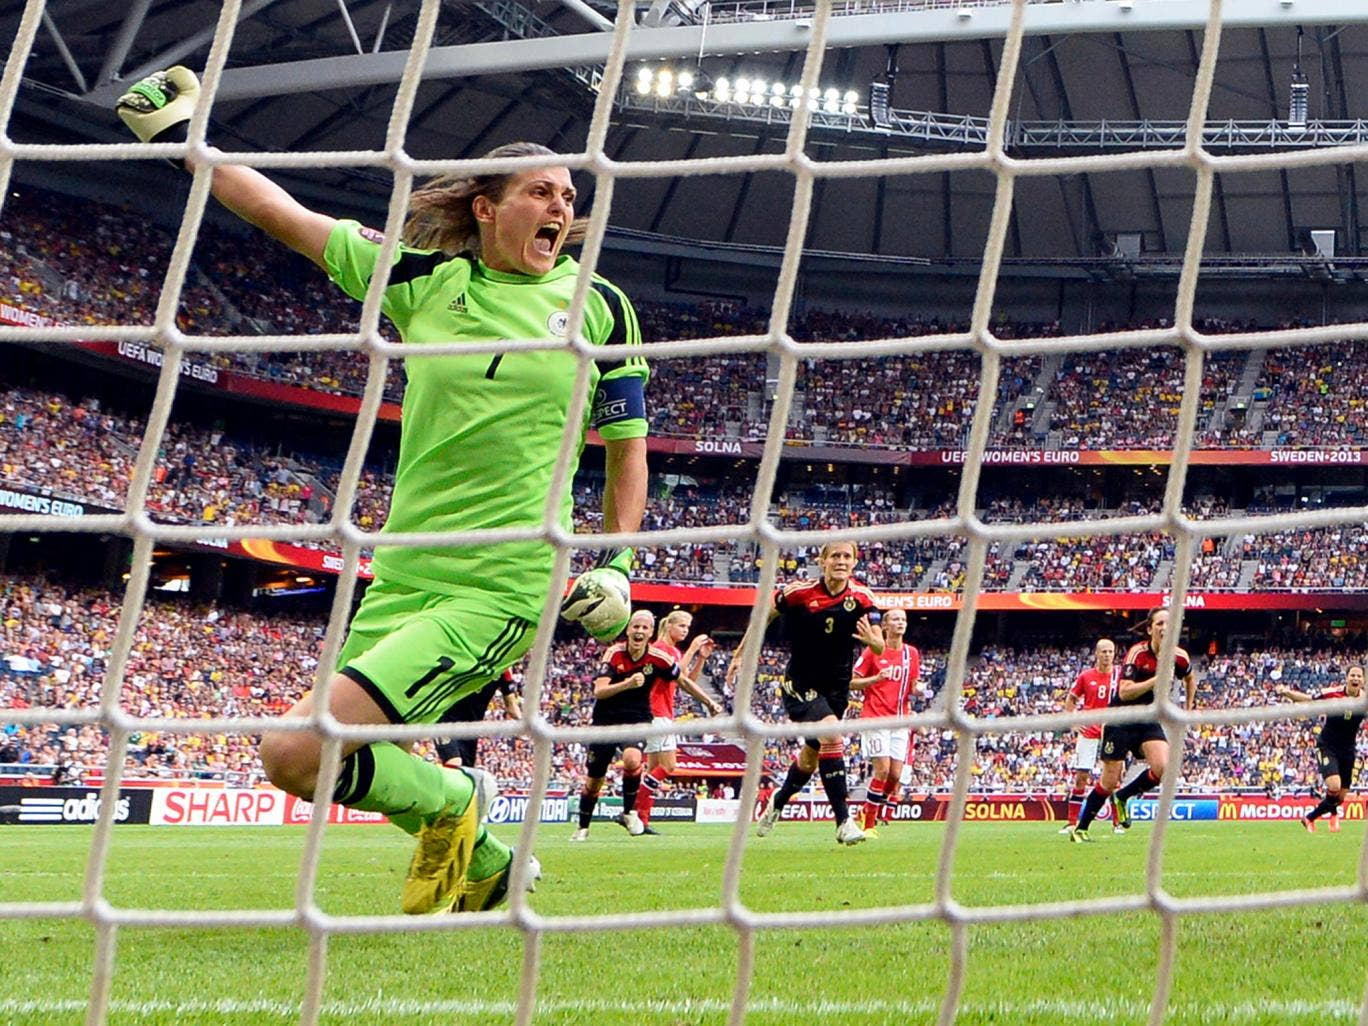 Germany's goalkeeper Nadine Angerer reacts after she saved a penalty shot during the UEFA Women's European Championship Euro 2013